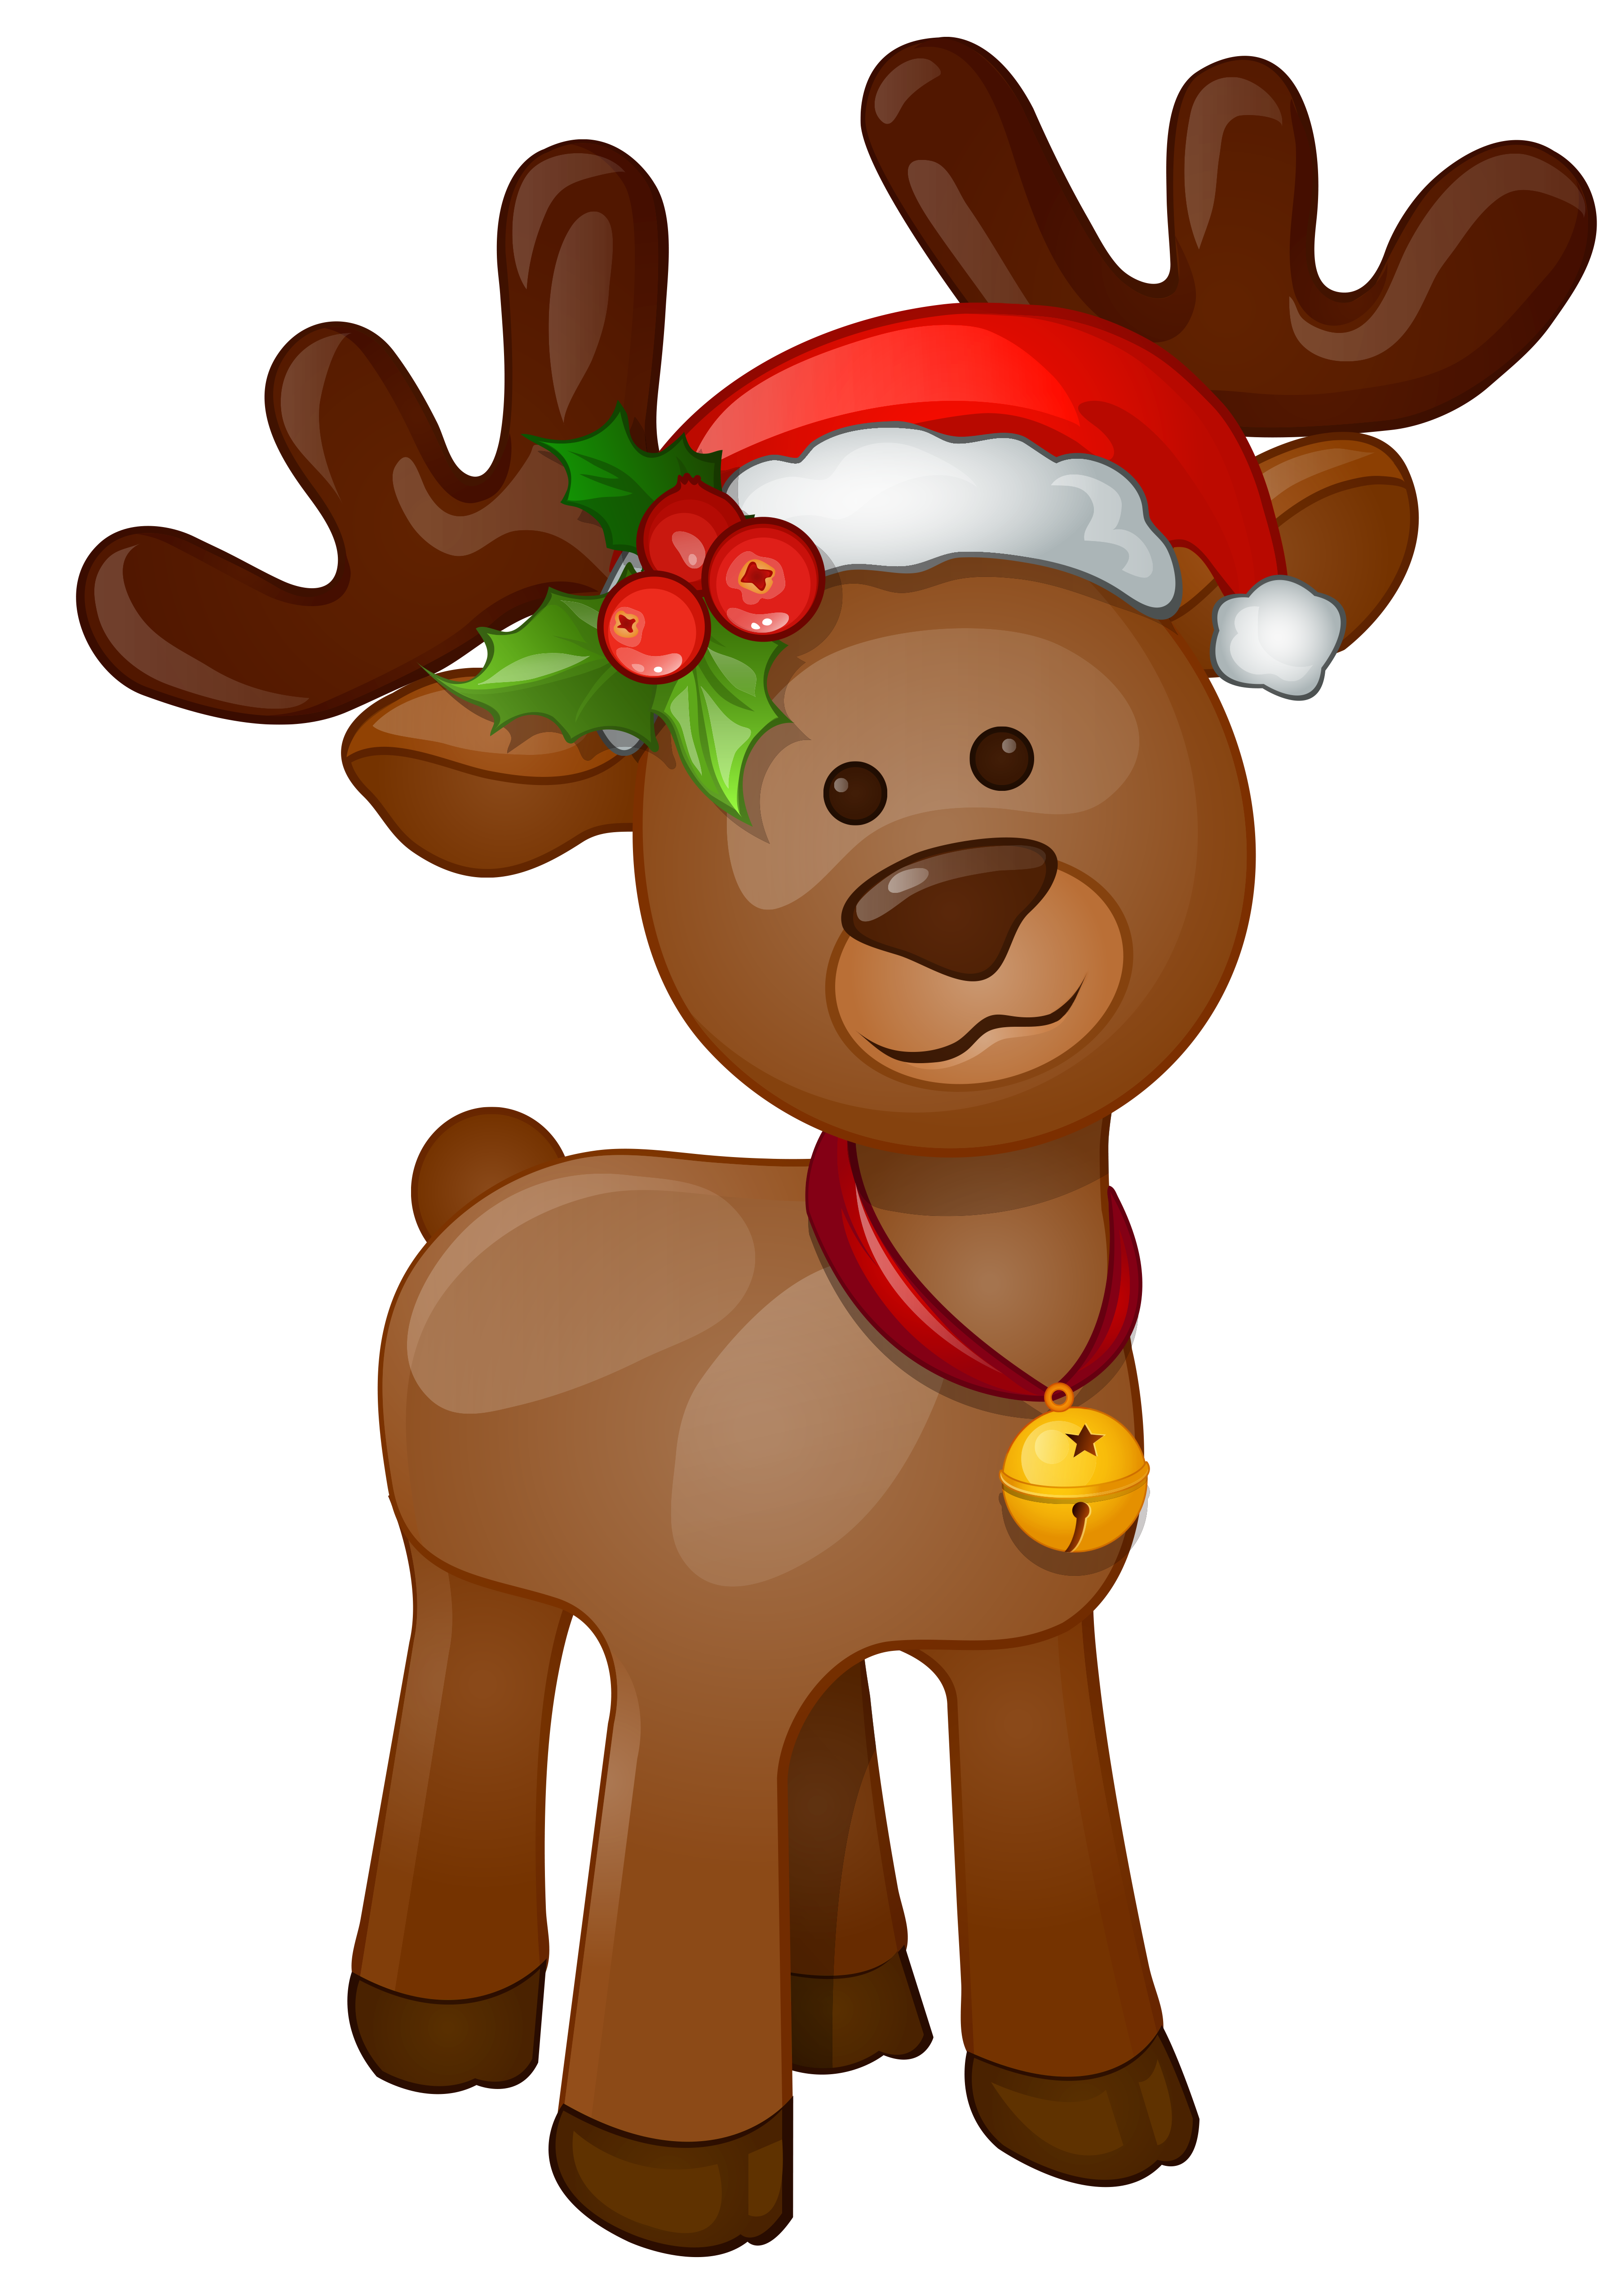 Rudolph PNG Clip Art Image-Rudolph PNG Clip Art Image-9